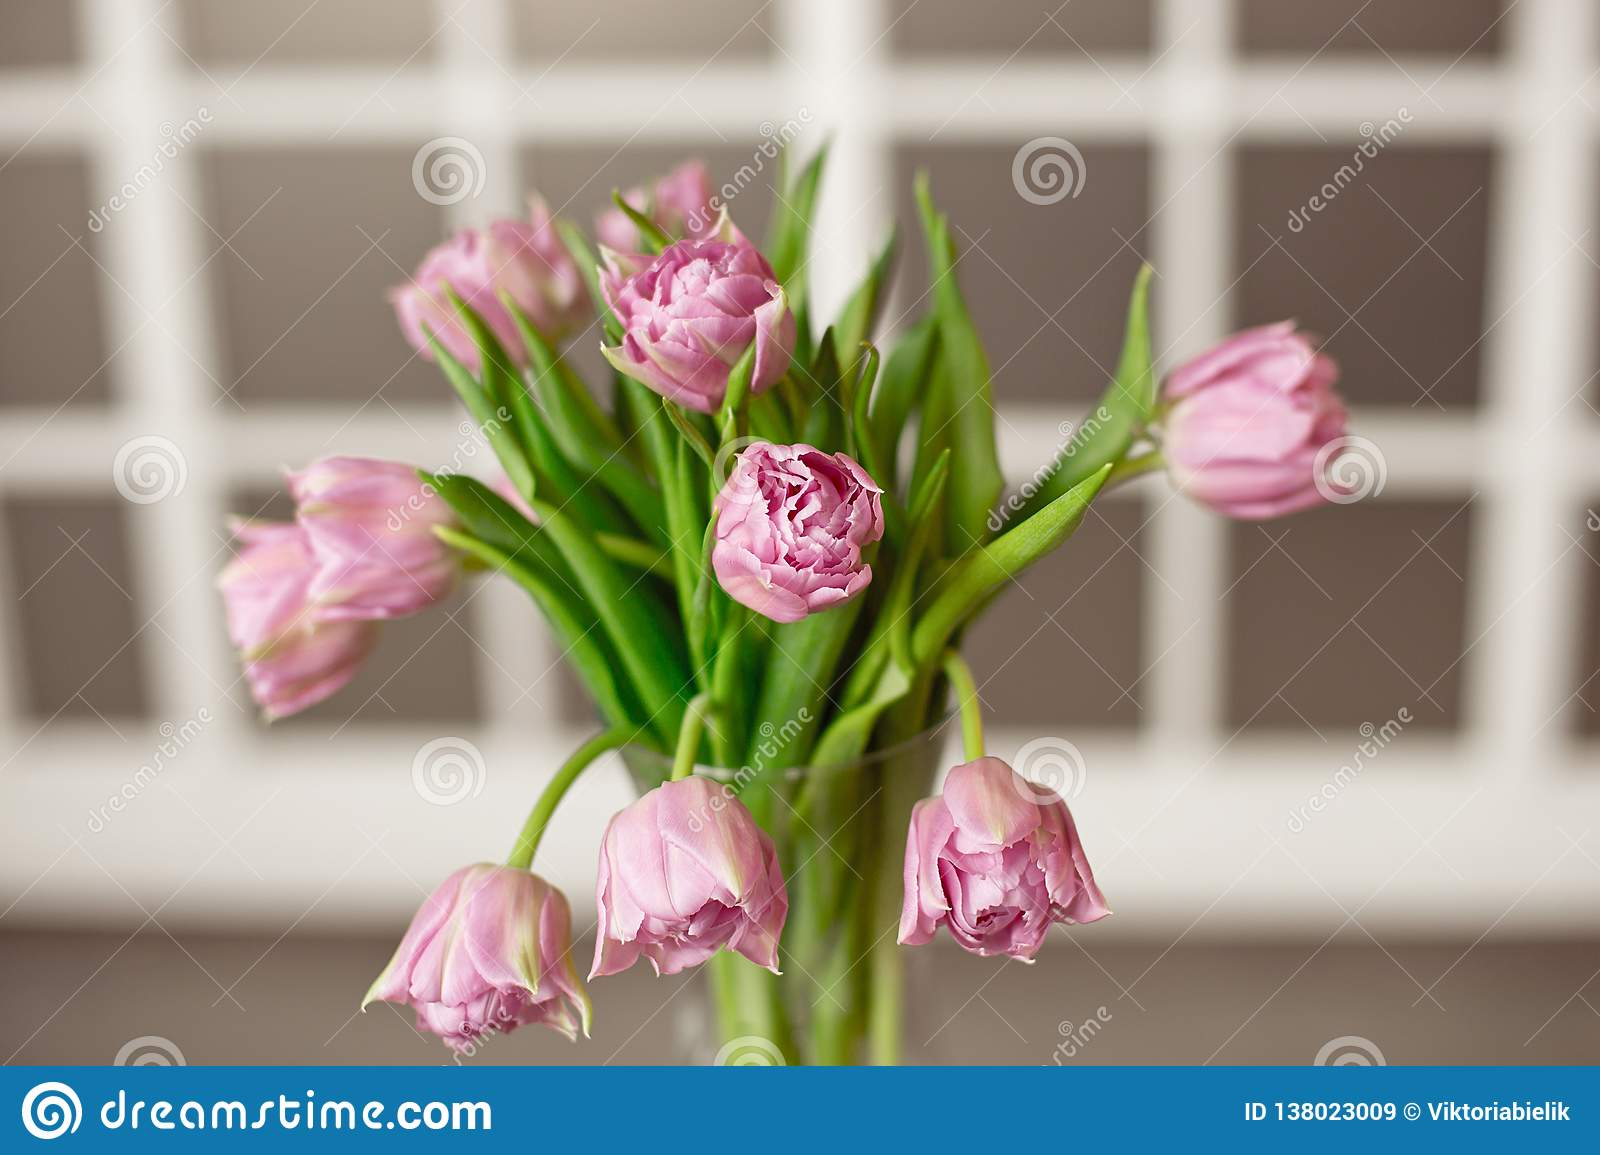 Glass vase with a bouquet of beautiful purple tulips against the background of a stained glass window.